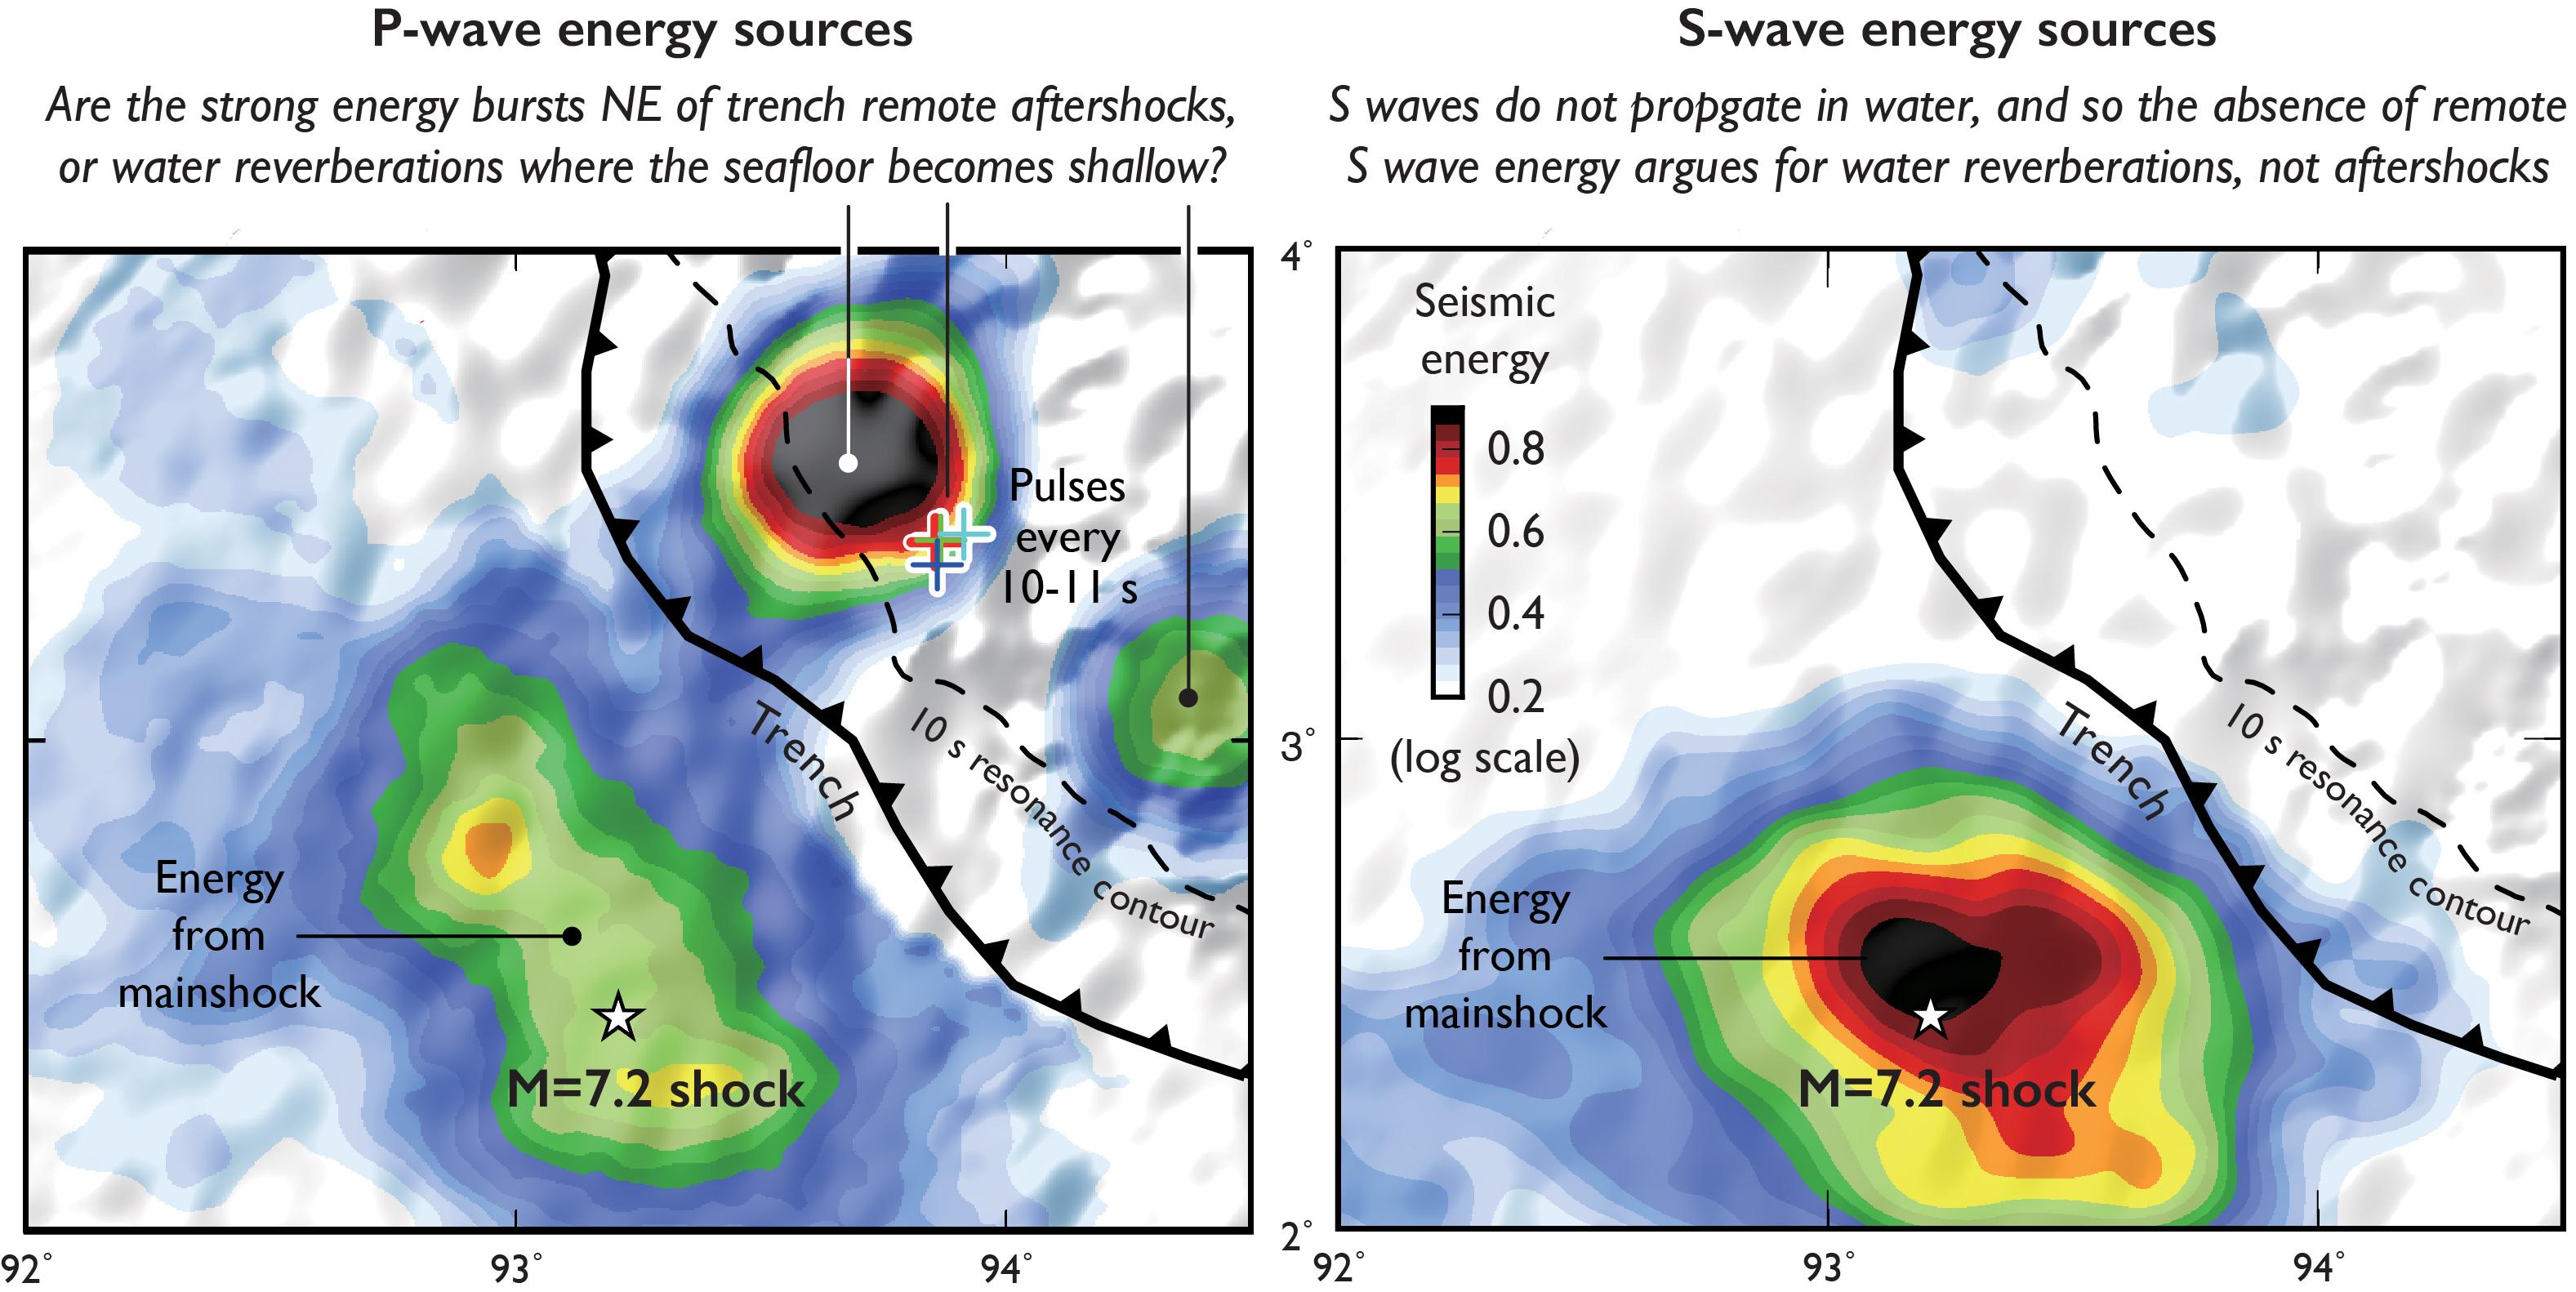 This is a simplified and annotated version of Fig. 3 of Yue et al. (2017). P waves transmit through rock and water, but S waves only through rock. So, if the energy pulses northeast (landward) of the trench were indeed aftershocks, they should appear in both panels, but they do not. 'Seismic energy' is the beam back-projection amplitude. The '+' signs refer to the pulses in time shown in the figure below.